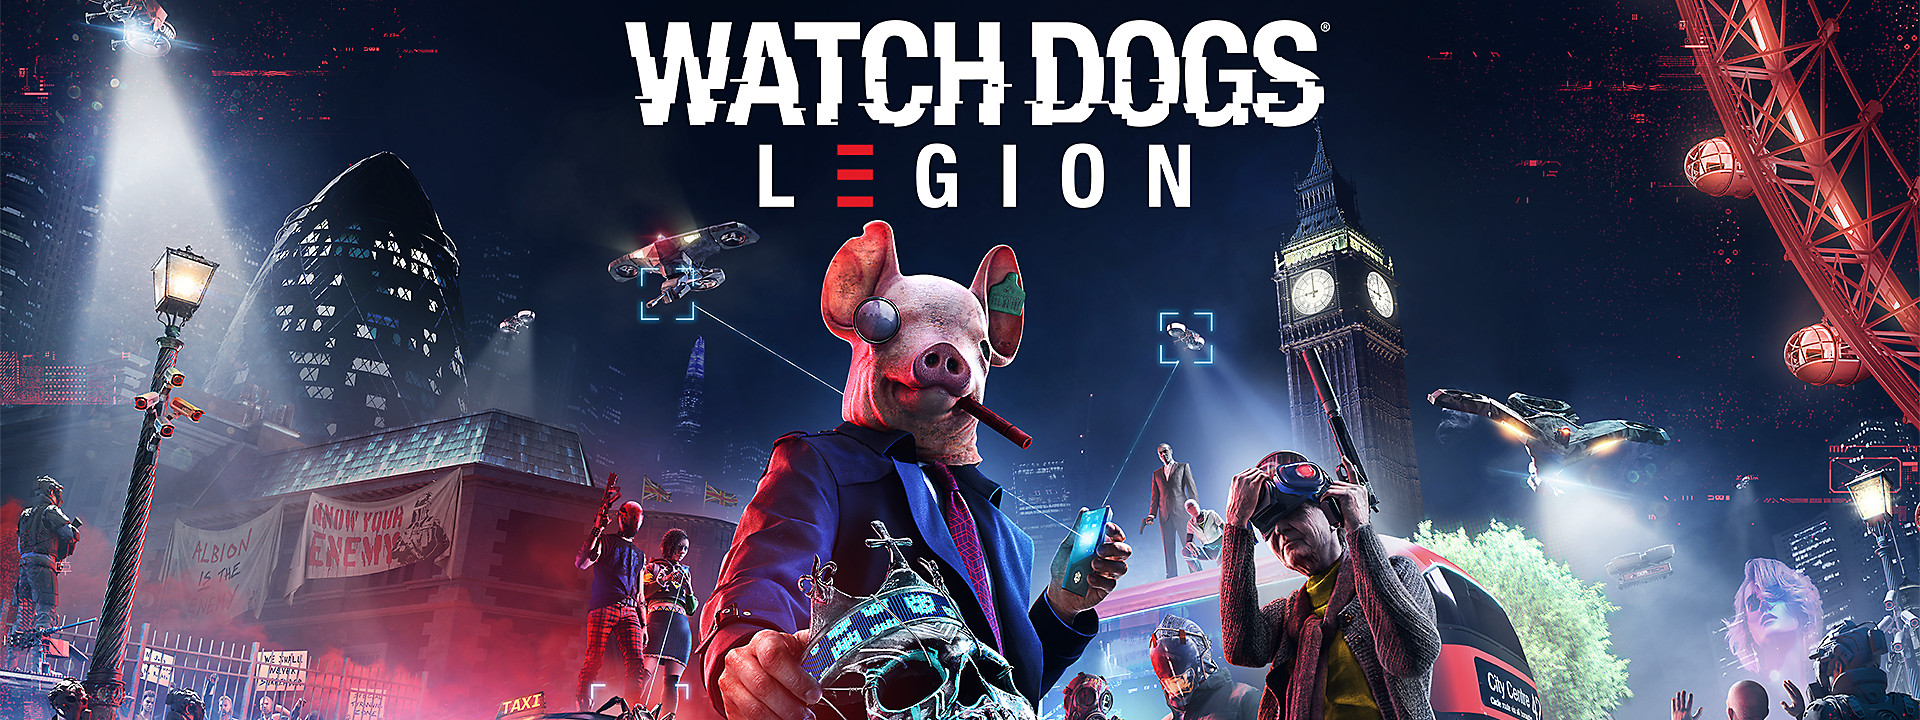 Watch Dogs Legion - Available Now